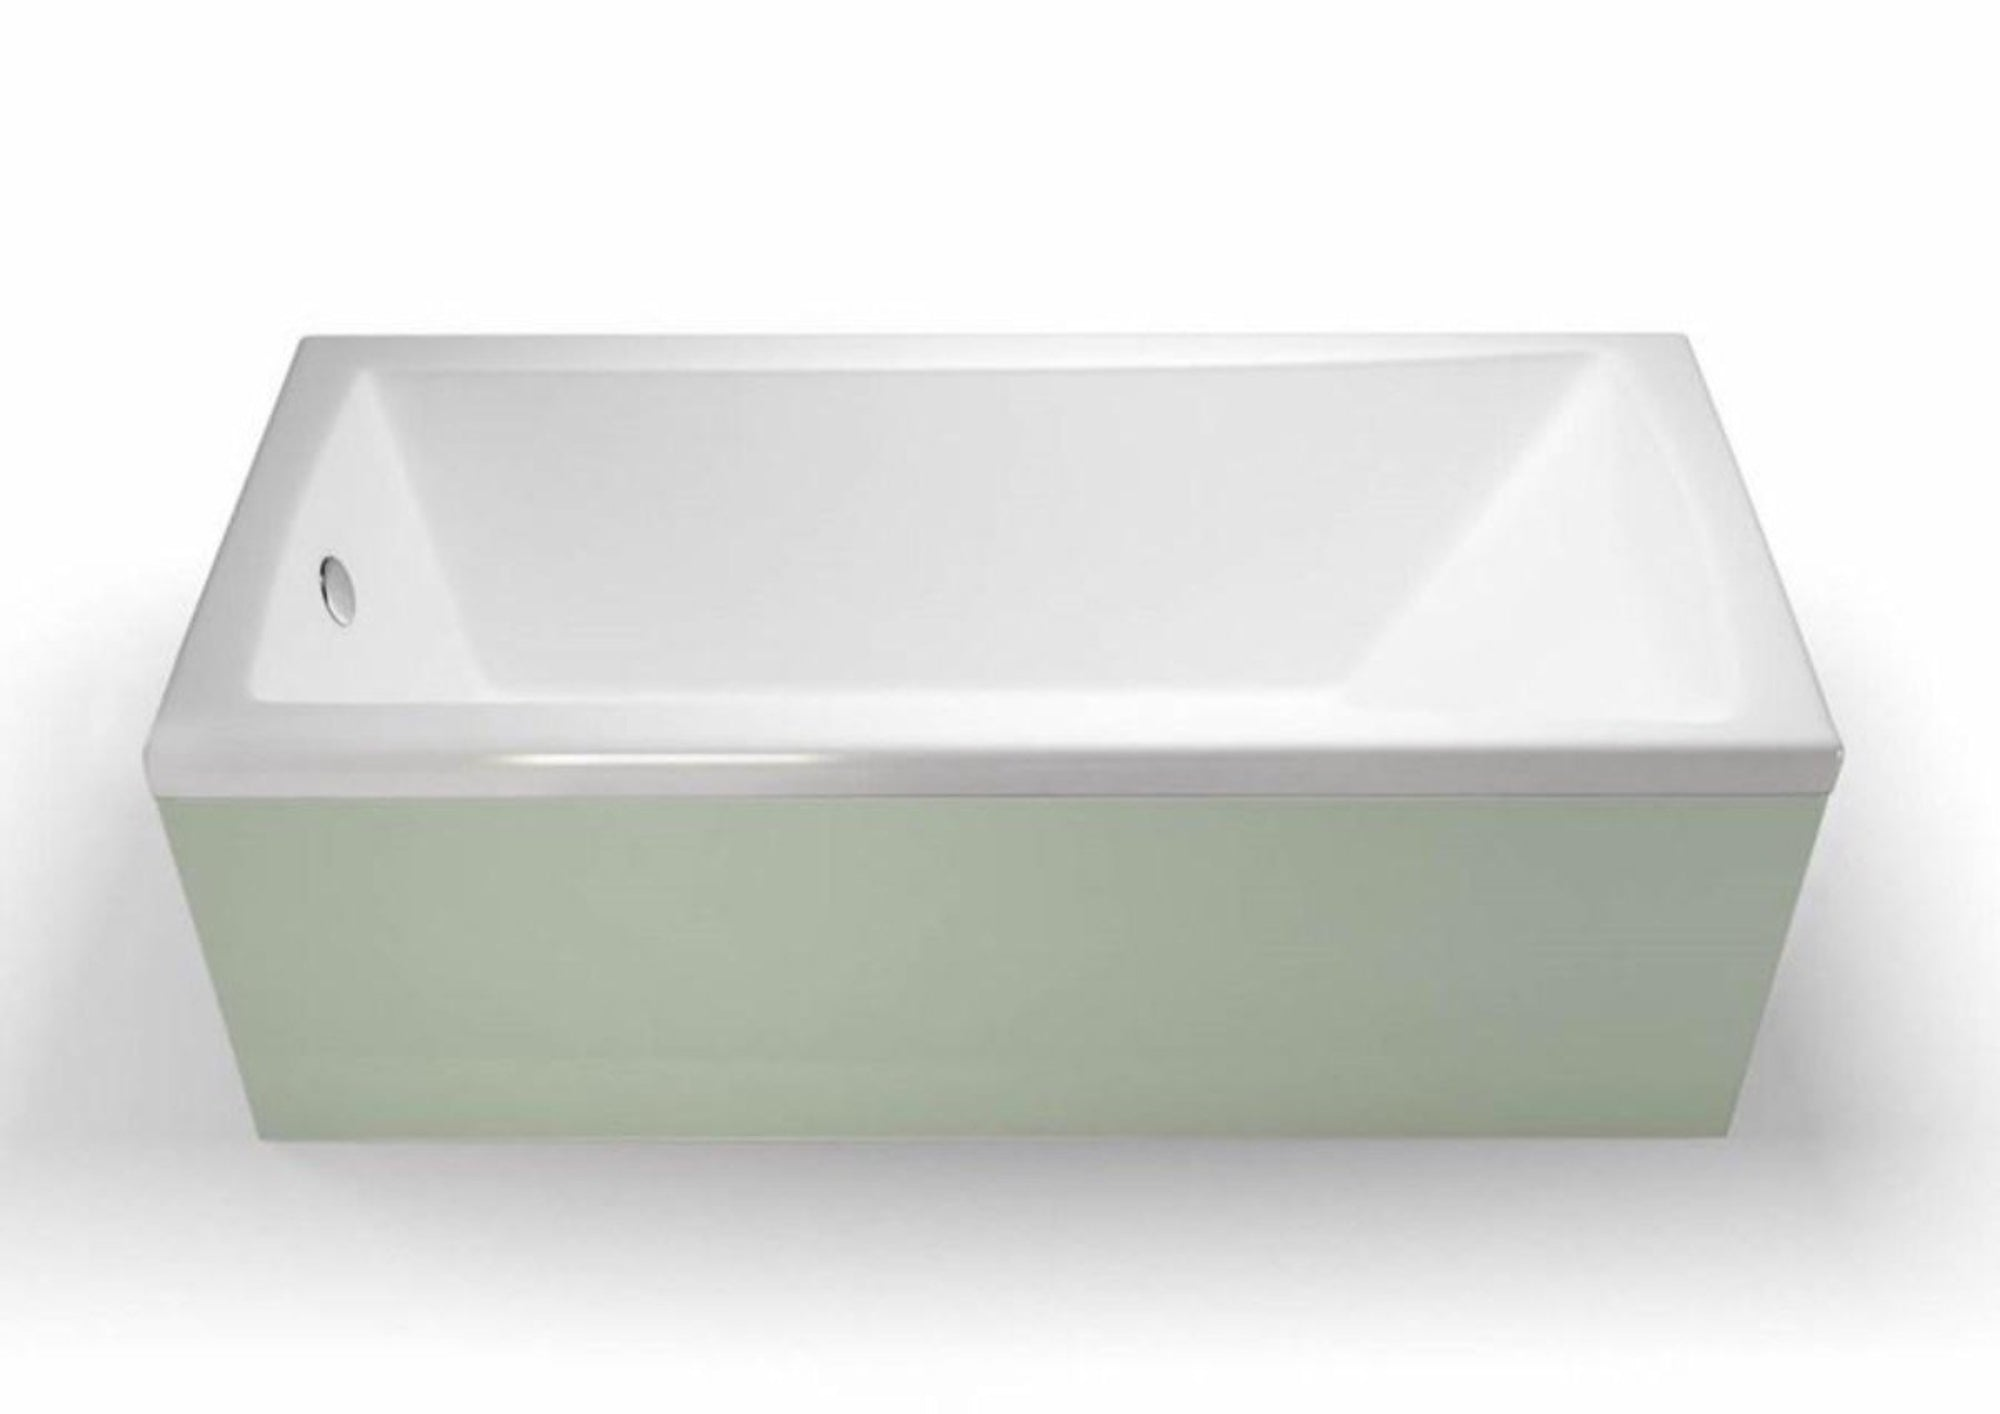 Sustain 1700 x 800mm Single Ended Bath - blueskybathrooms